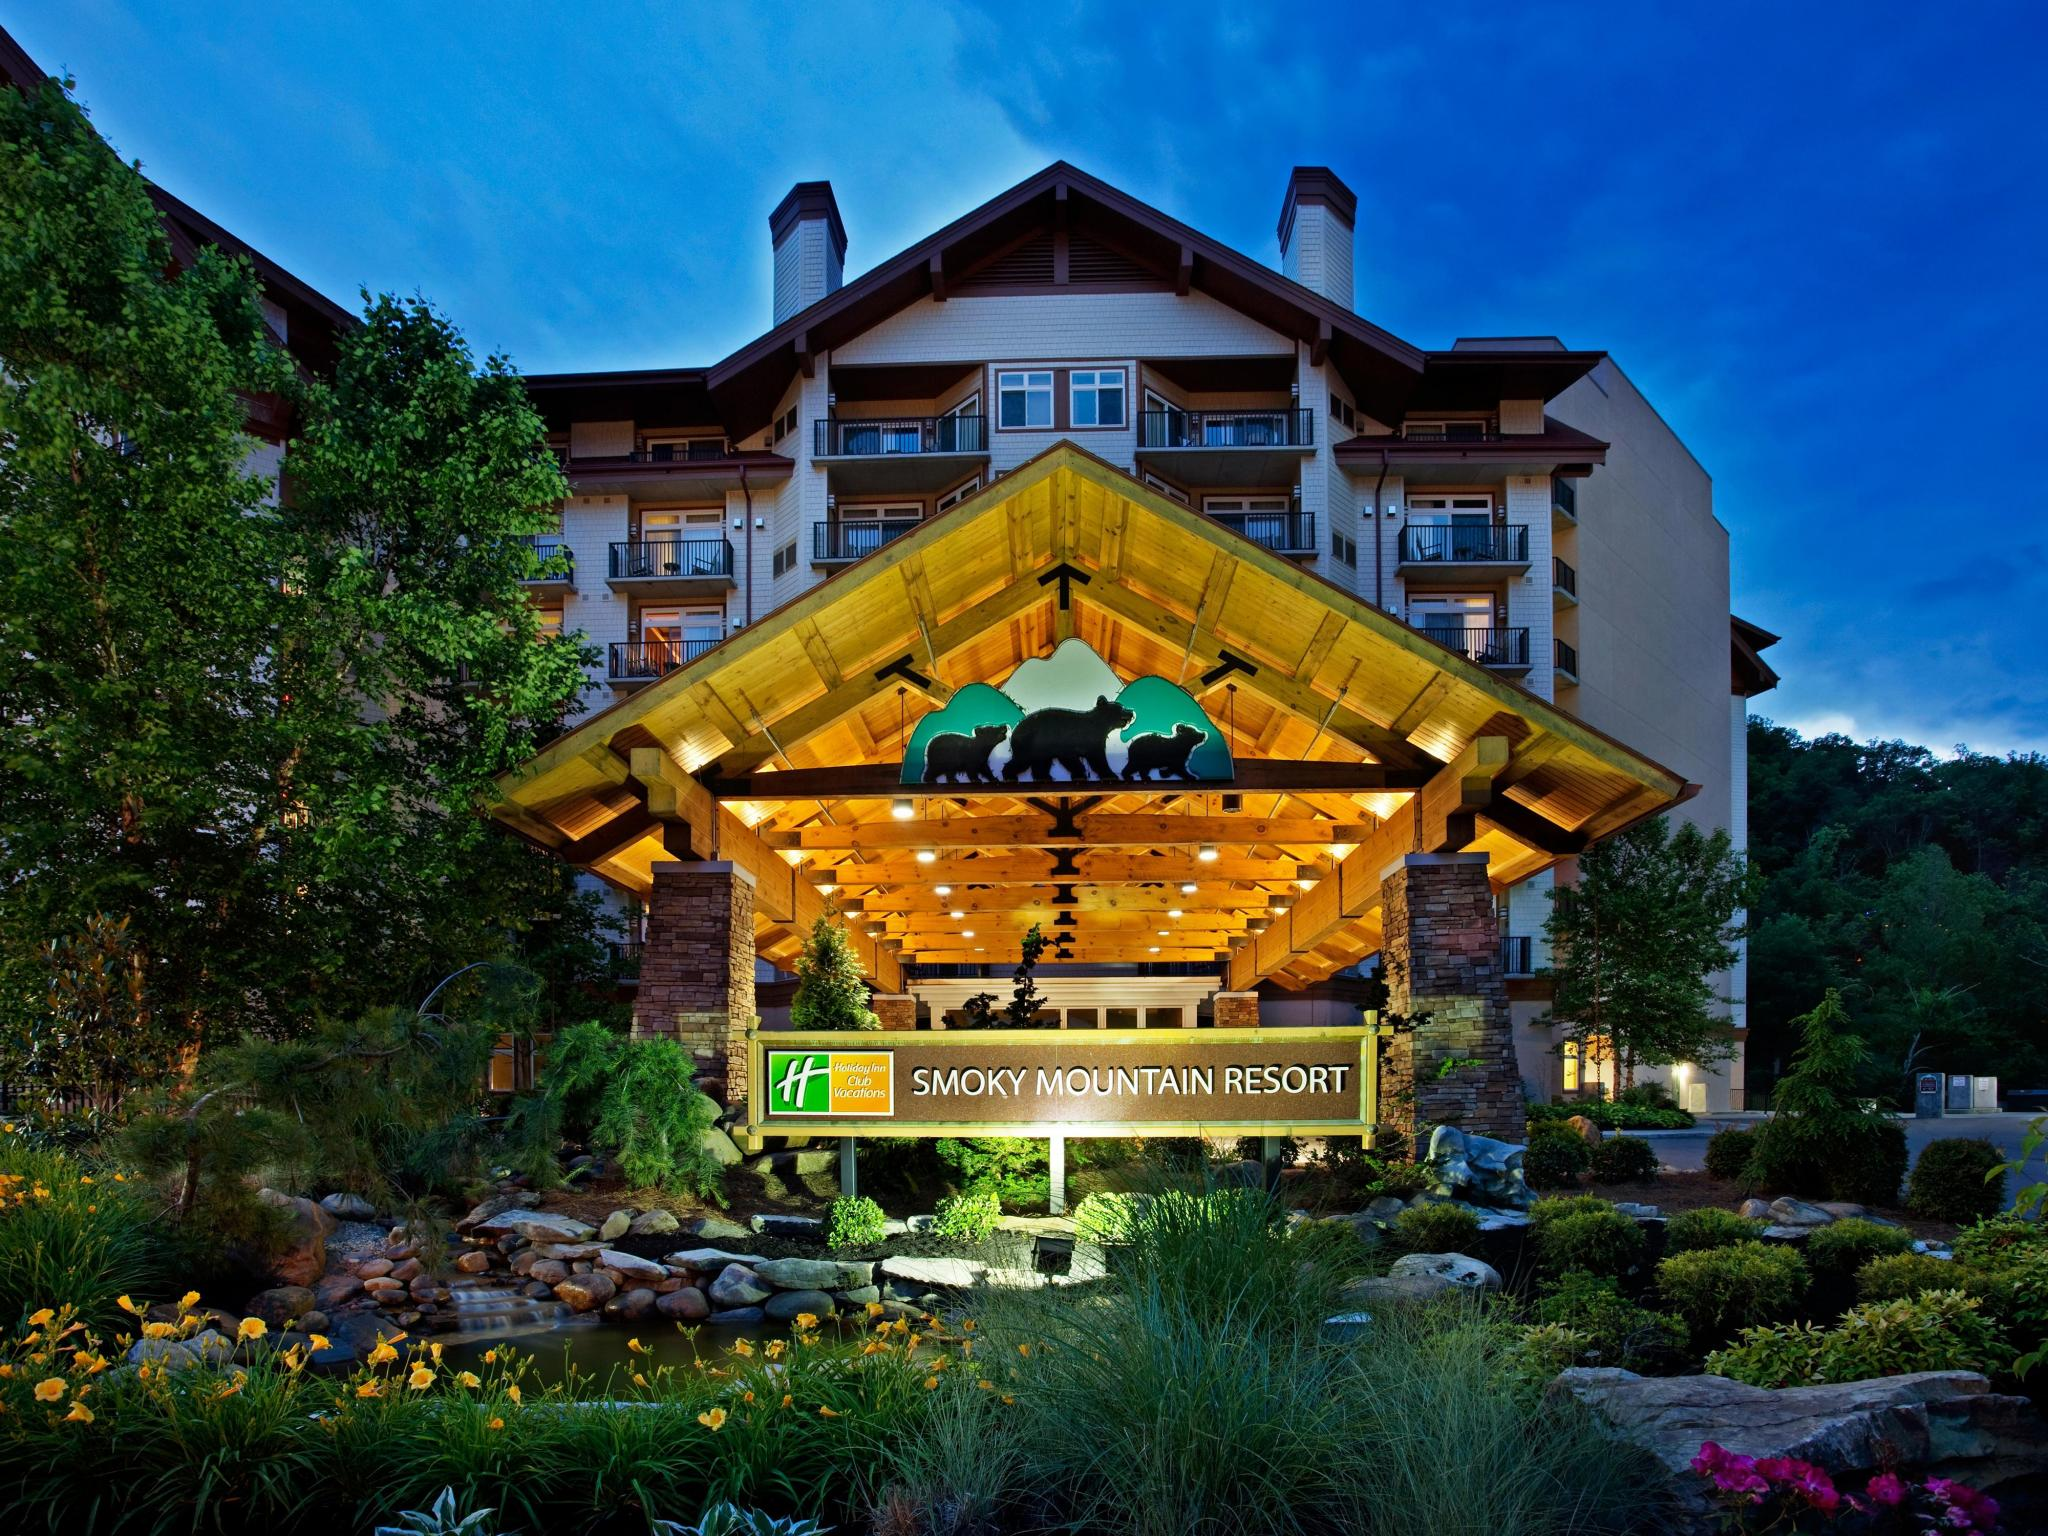 holiday inn club vacations at smoky mountain resort | redweek